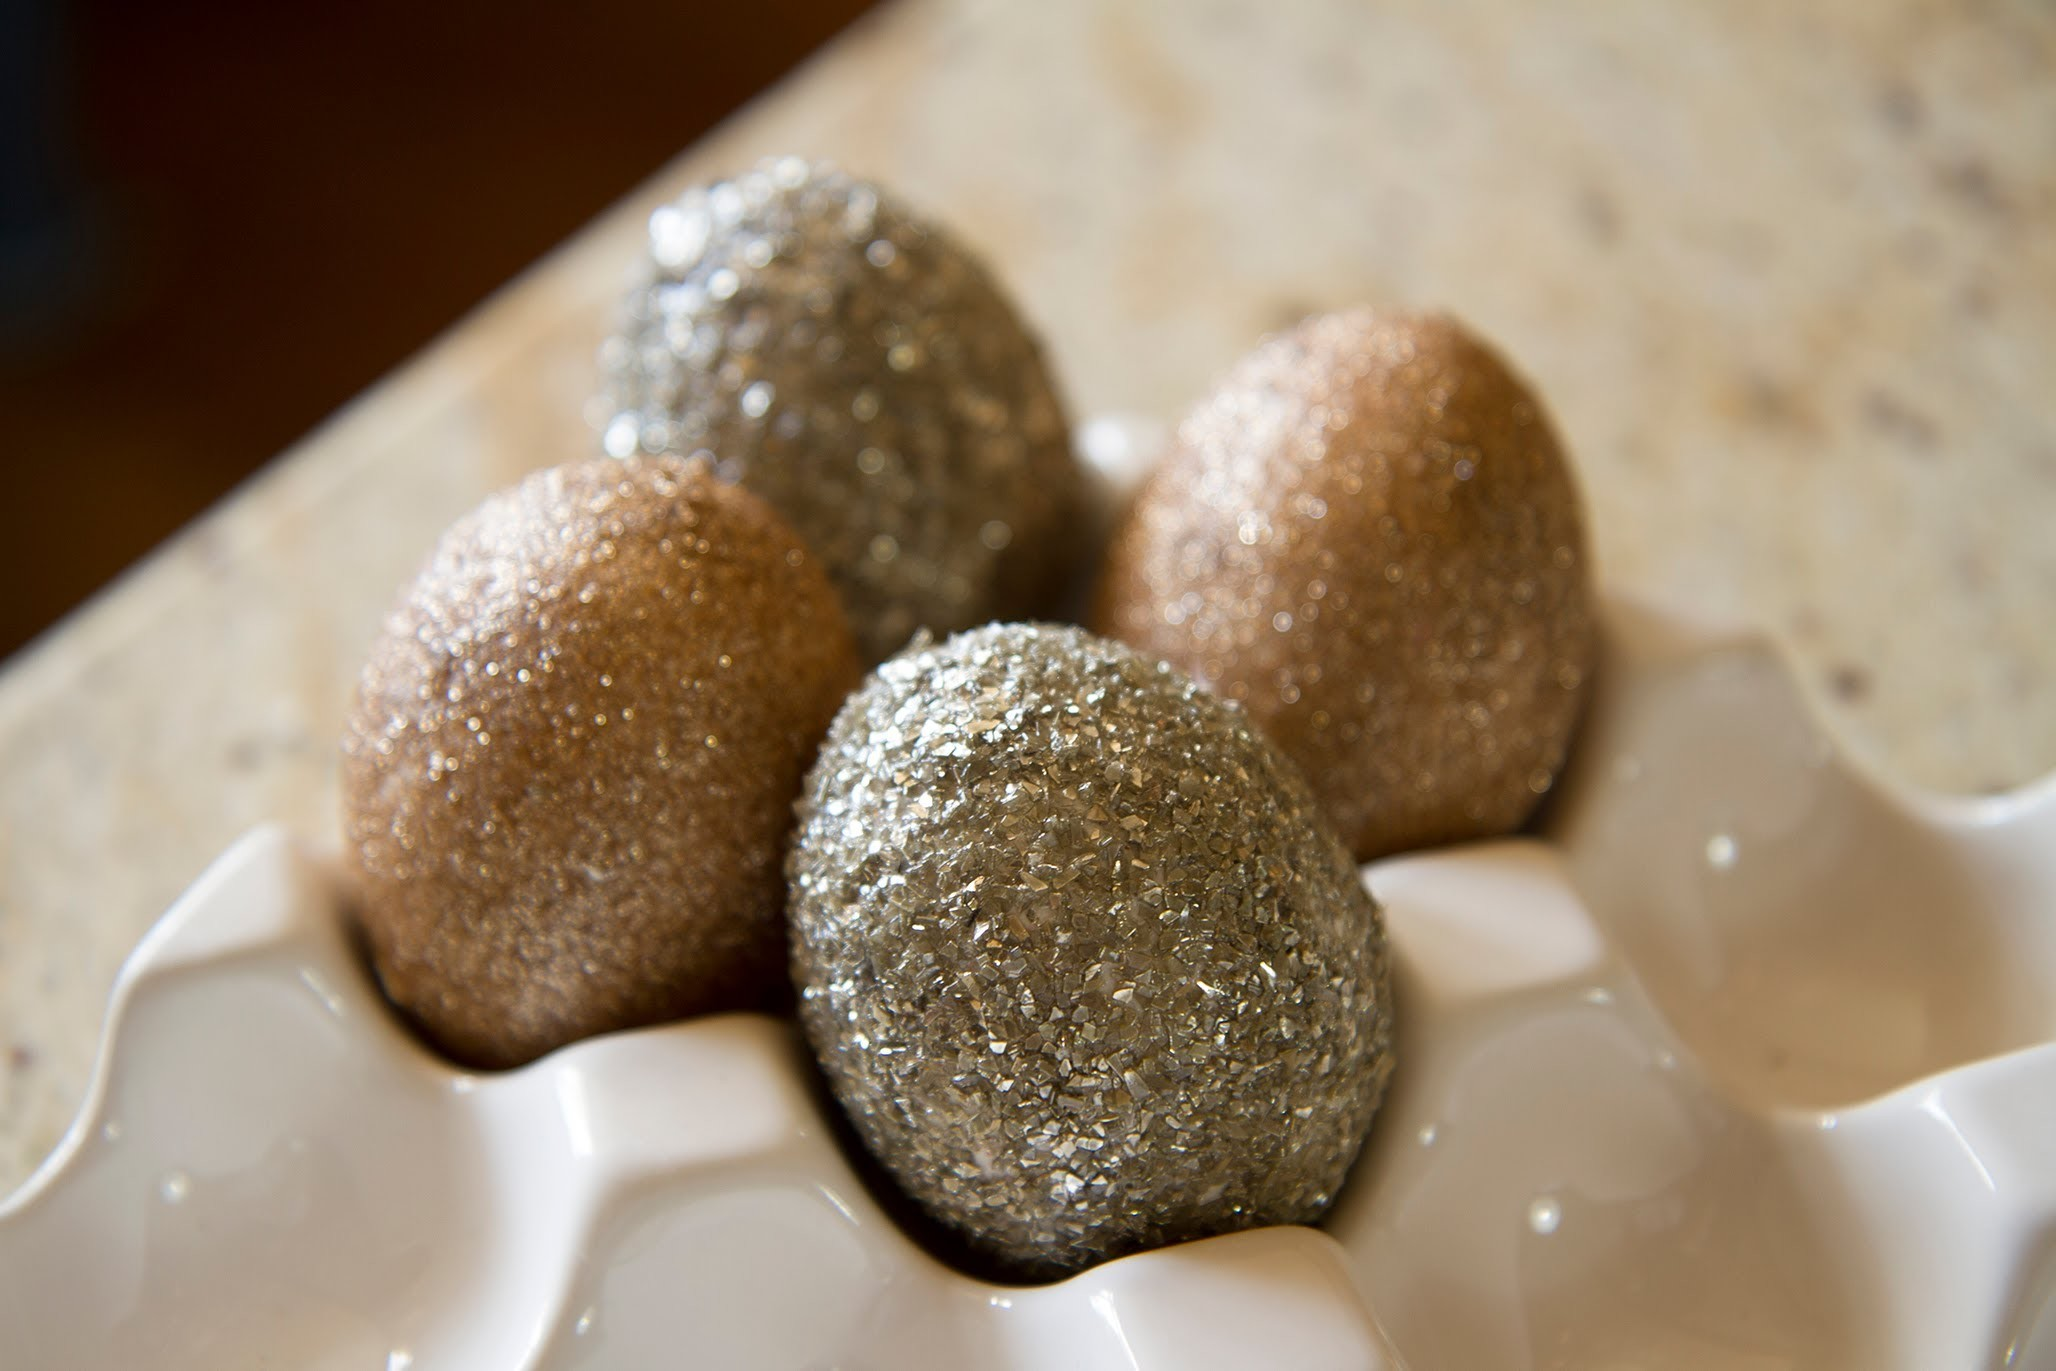 Glitter Easter Eggs - Let's Craft with ModernMom